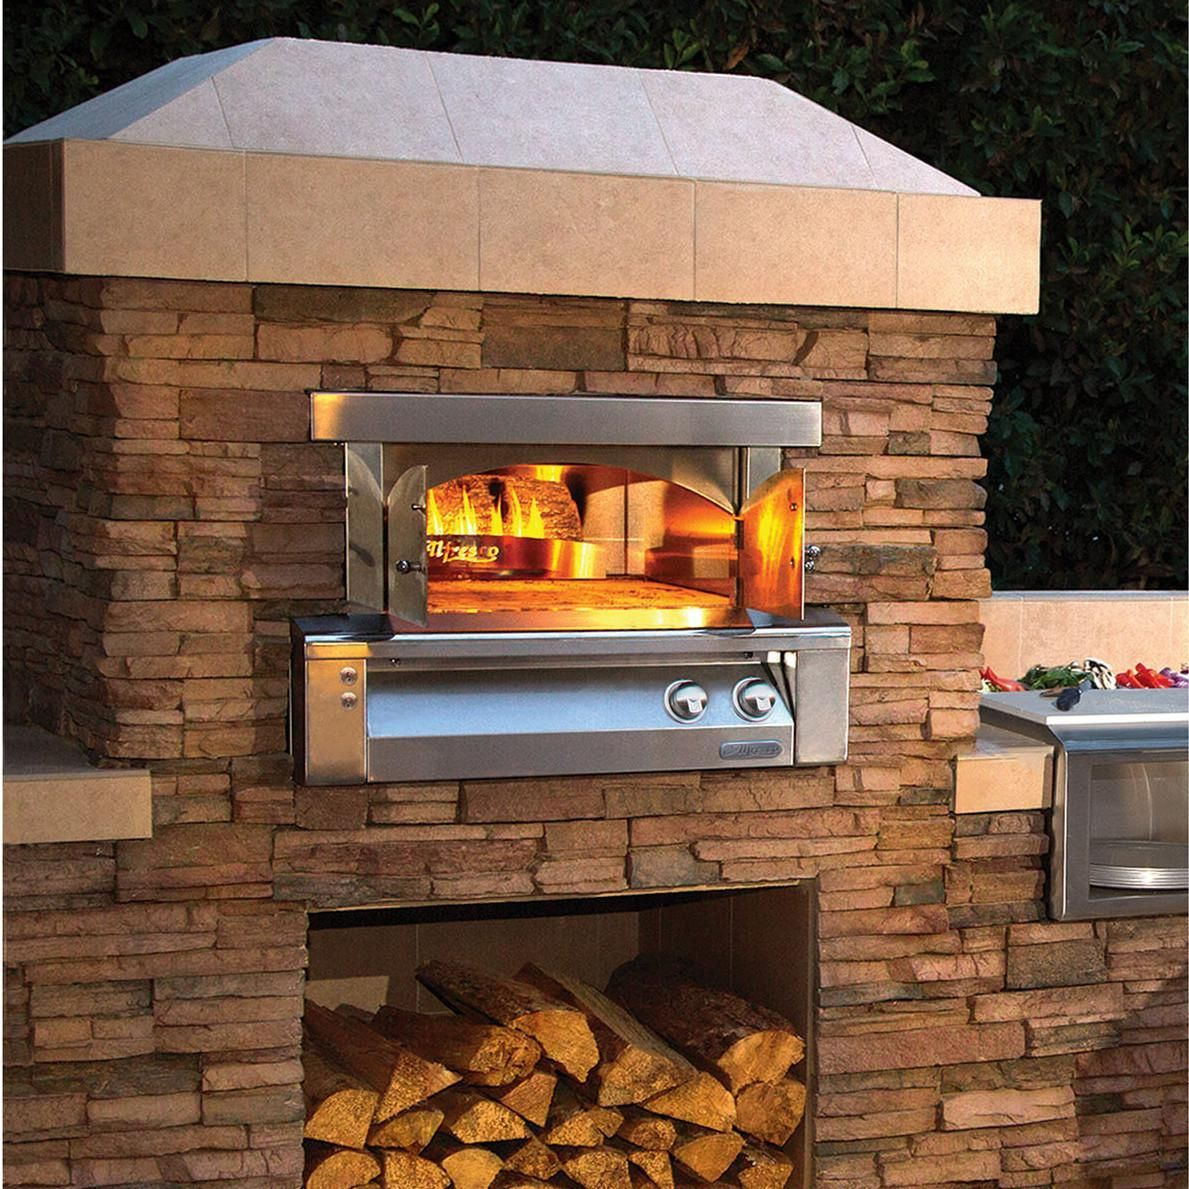 alfresco 30 inch built in propane gas outdoor pizza oven axe pza